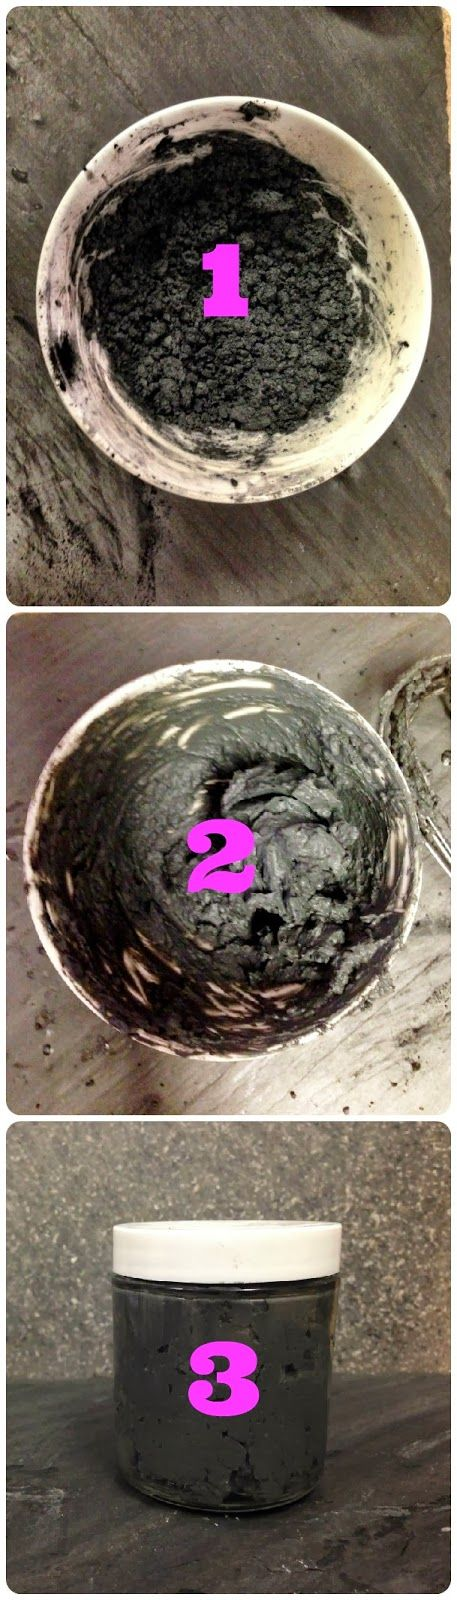 Recipe for Sephora's Glam Glow mud mask. Freaking yes!!!! Pretty mask for a pretty face!